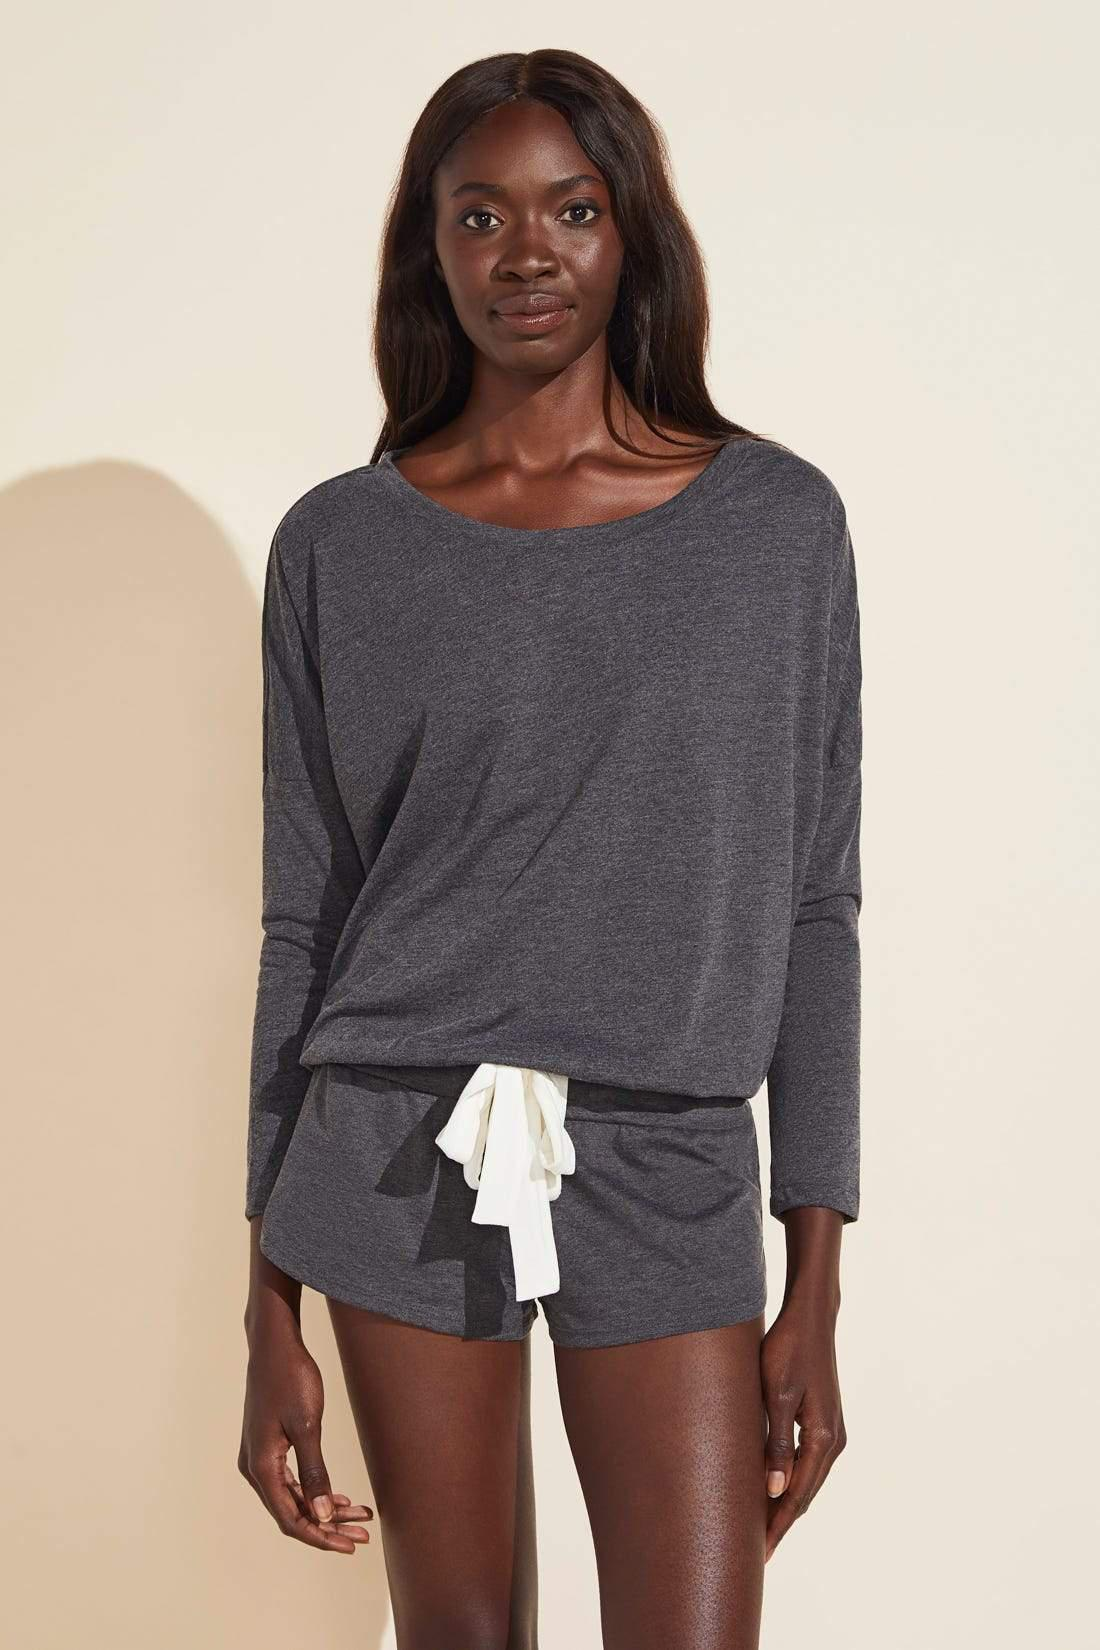 Heather Cotton Blend Top - Charcoal Heather